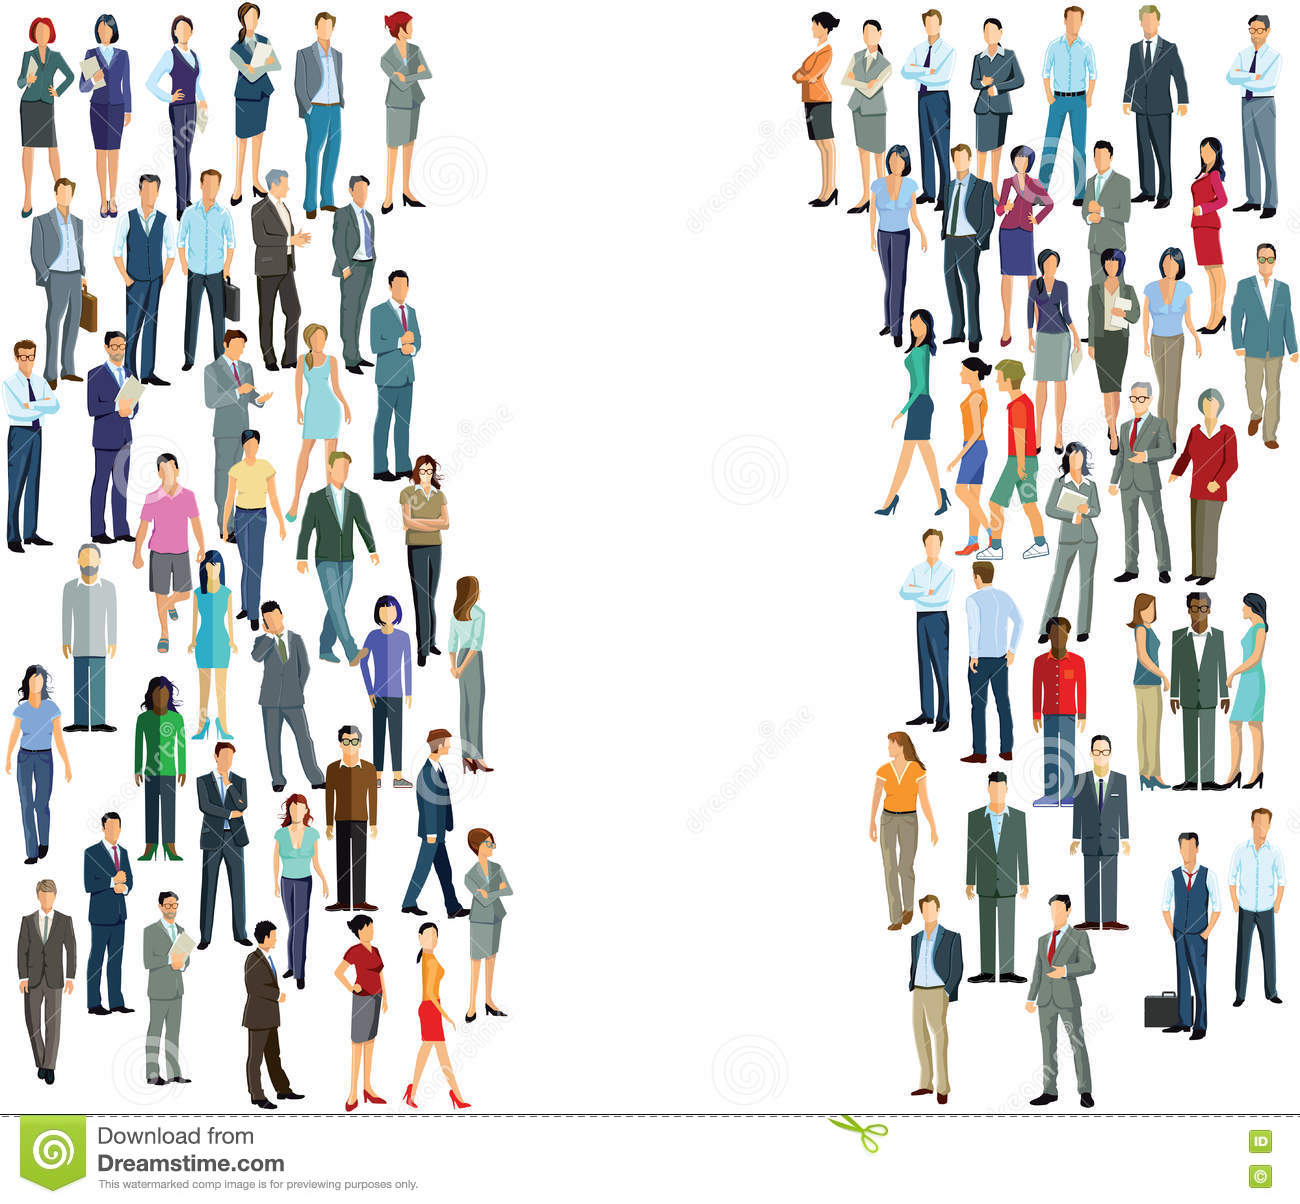 separate people. royalty-free vector. download separate groups of people a